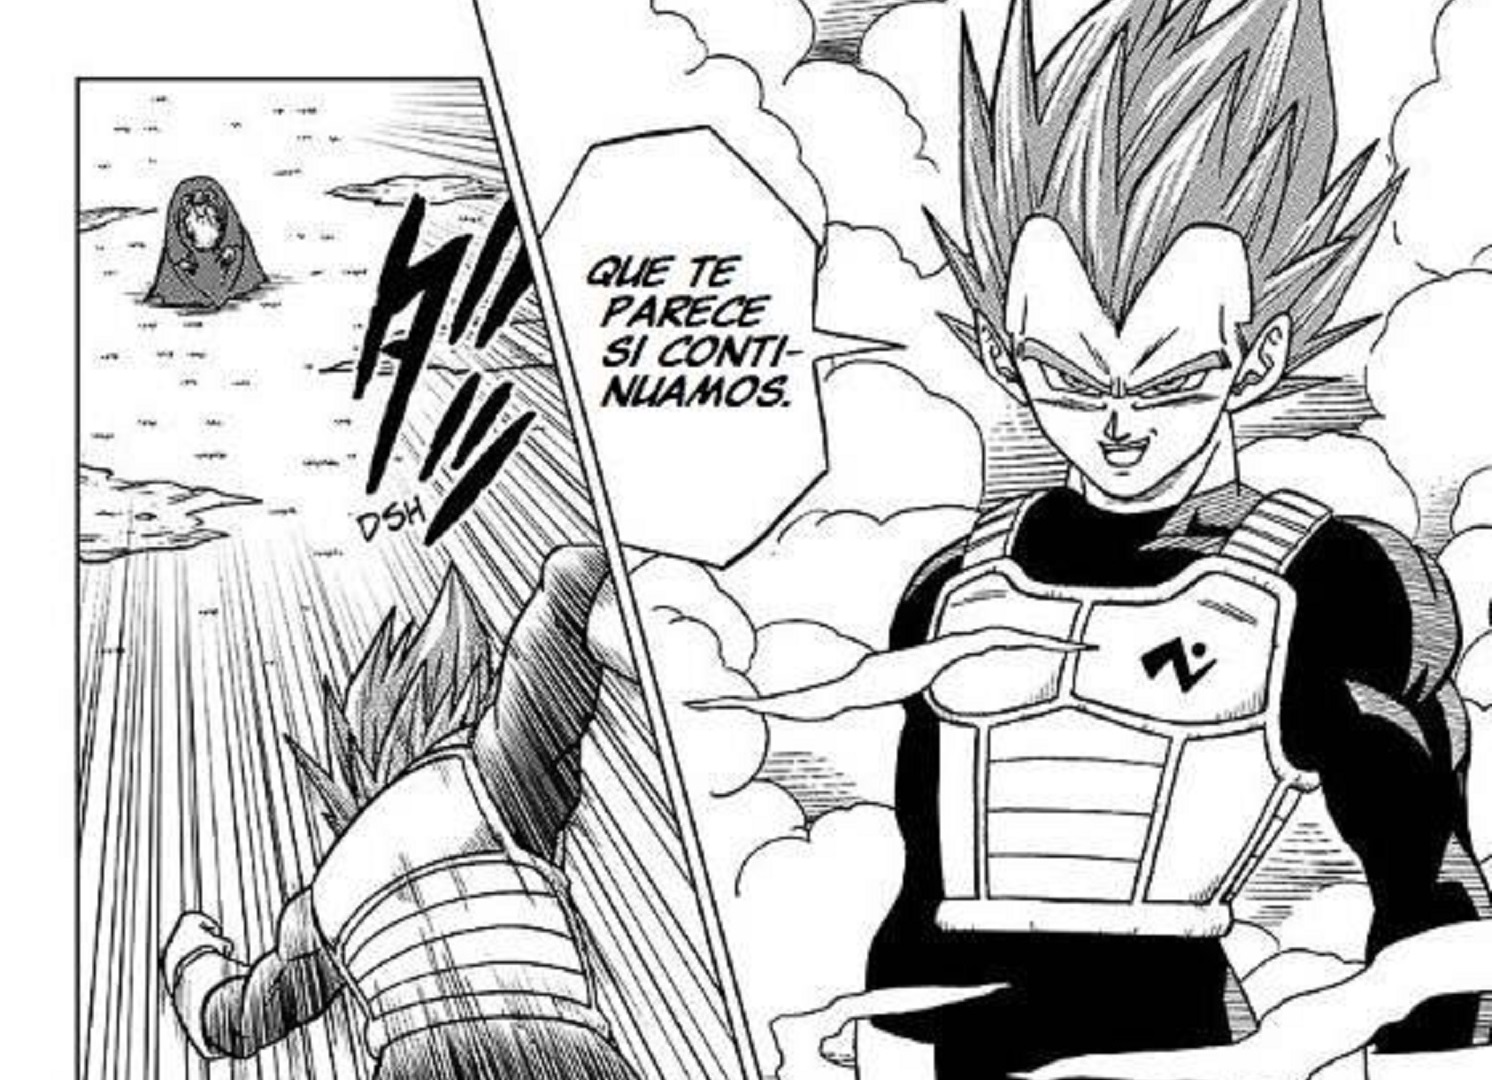 Dragon Ball Super manga 44 totalmente en español: ¡El prisionero Moro ha escapado!